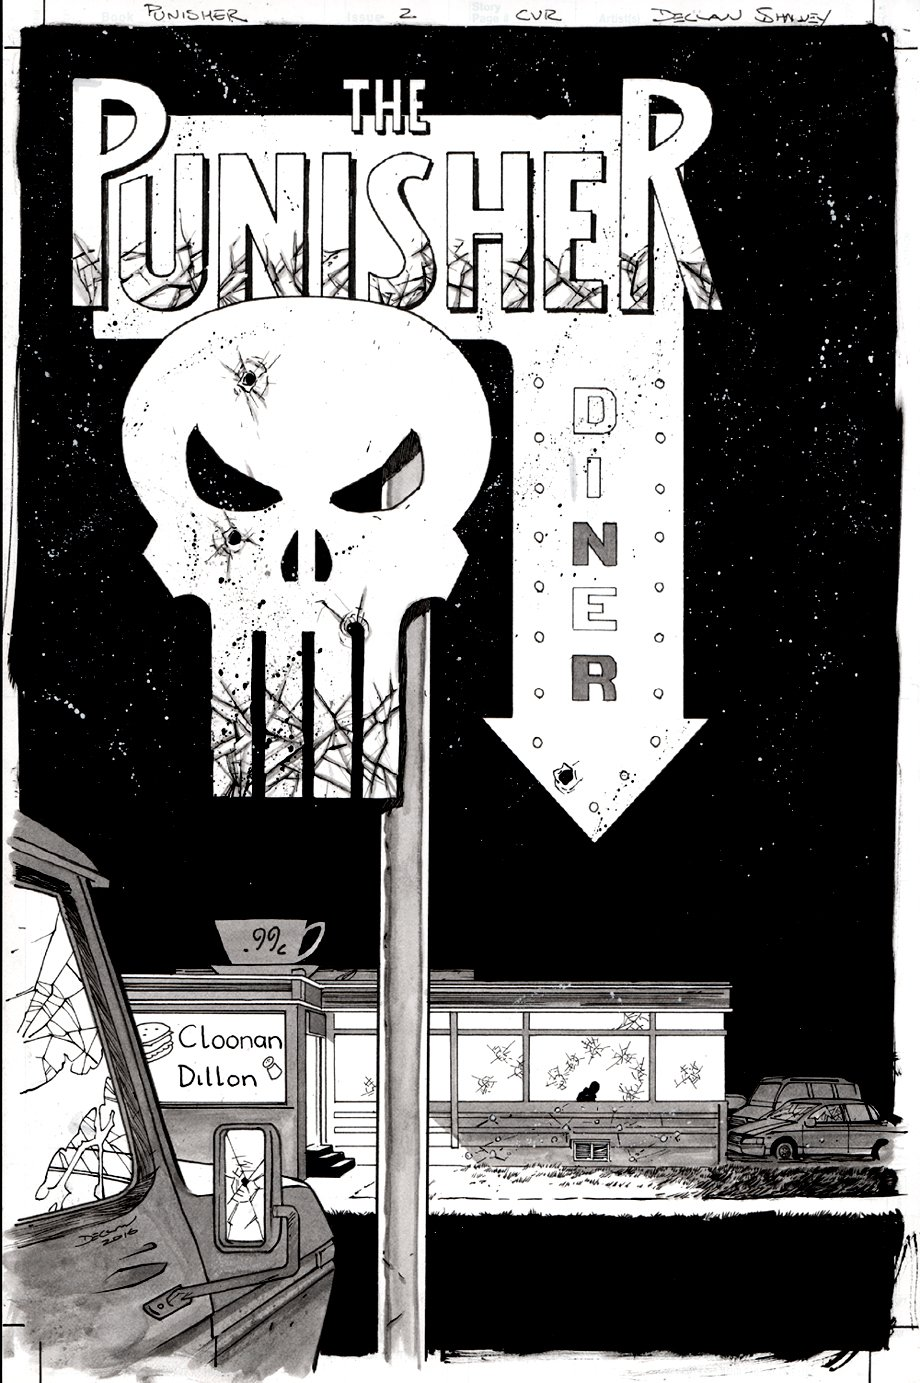 The Punisher #2 Cover (2016)